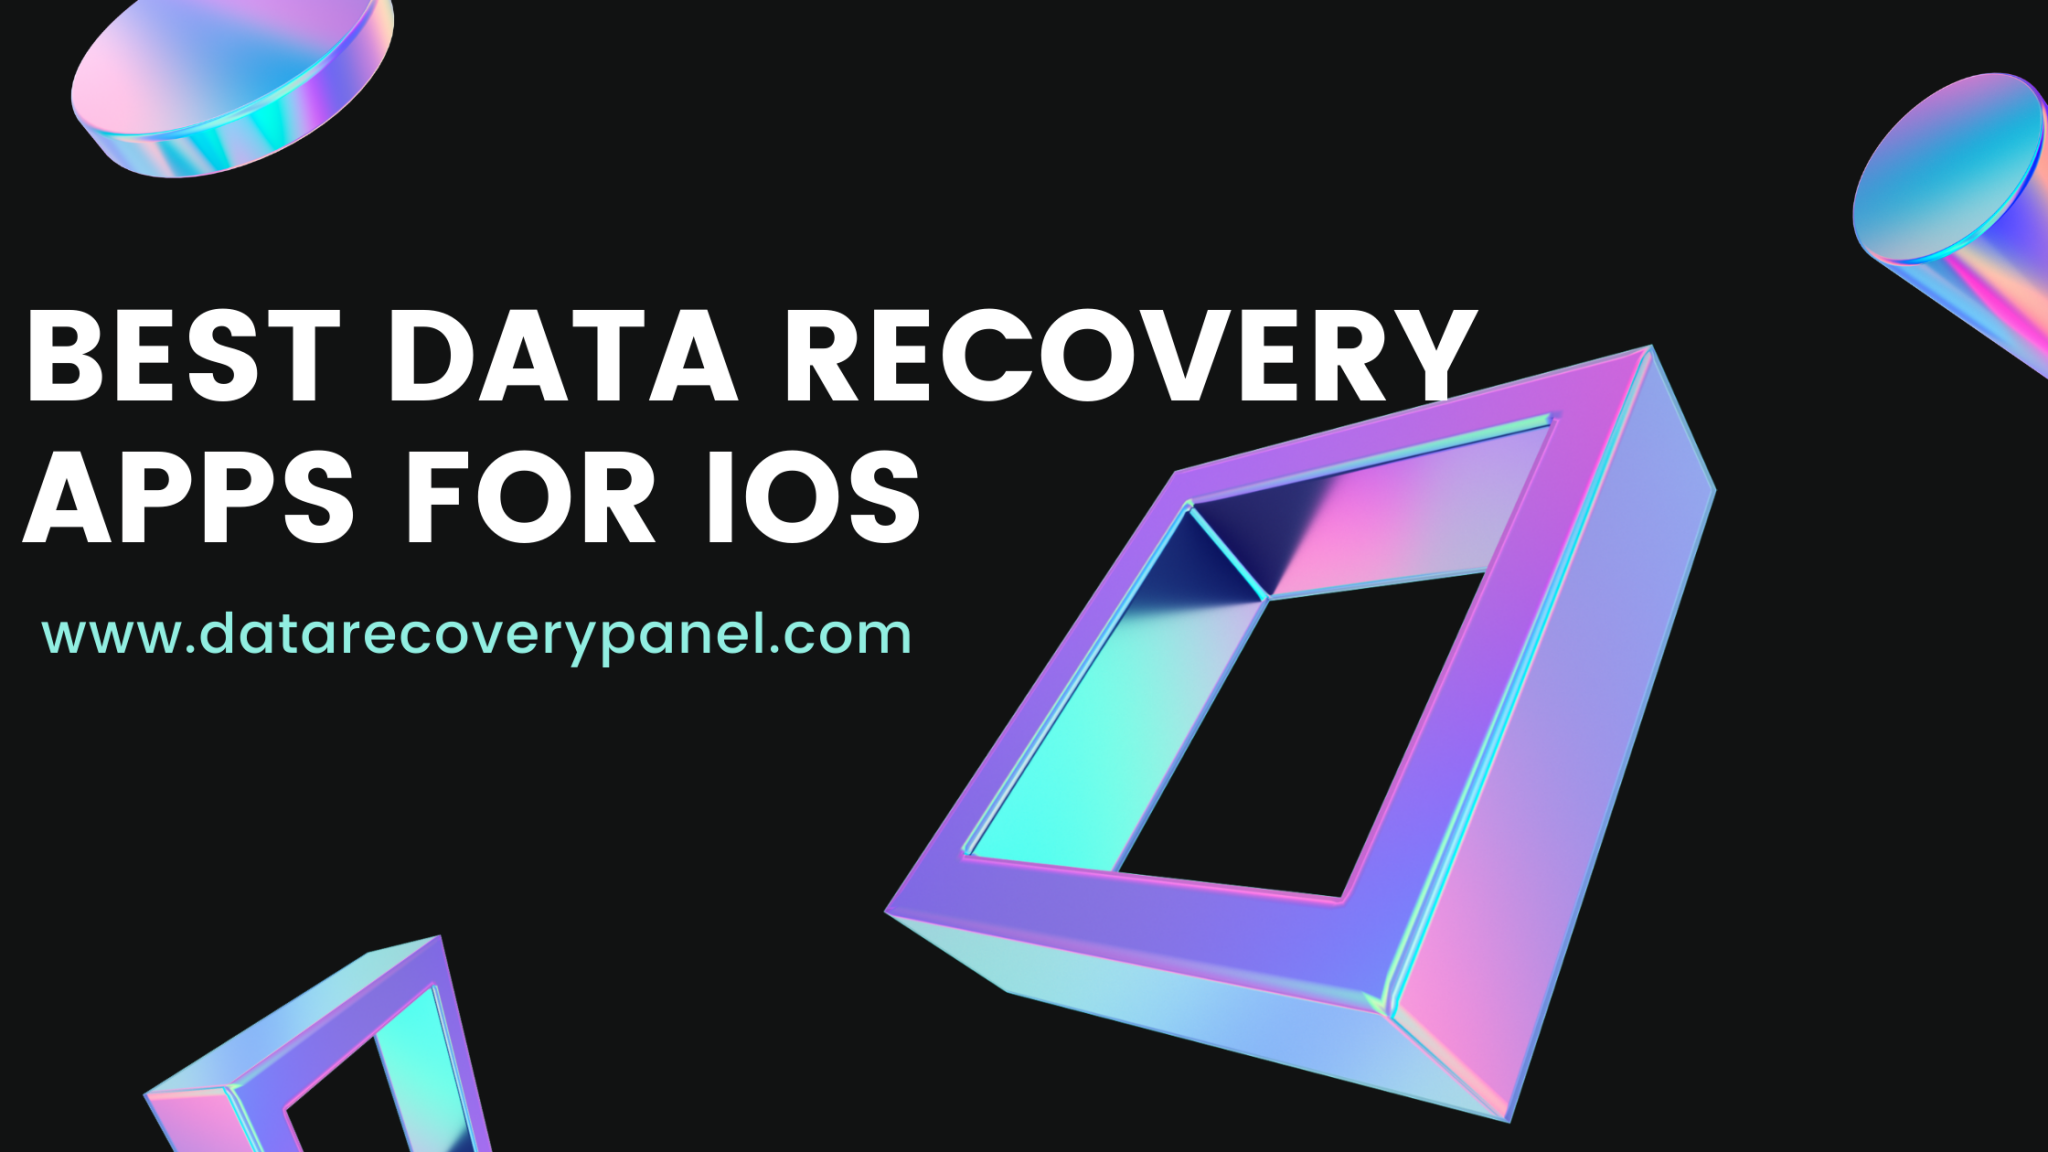 Data Recovery Apps For Ios